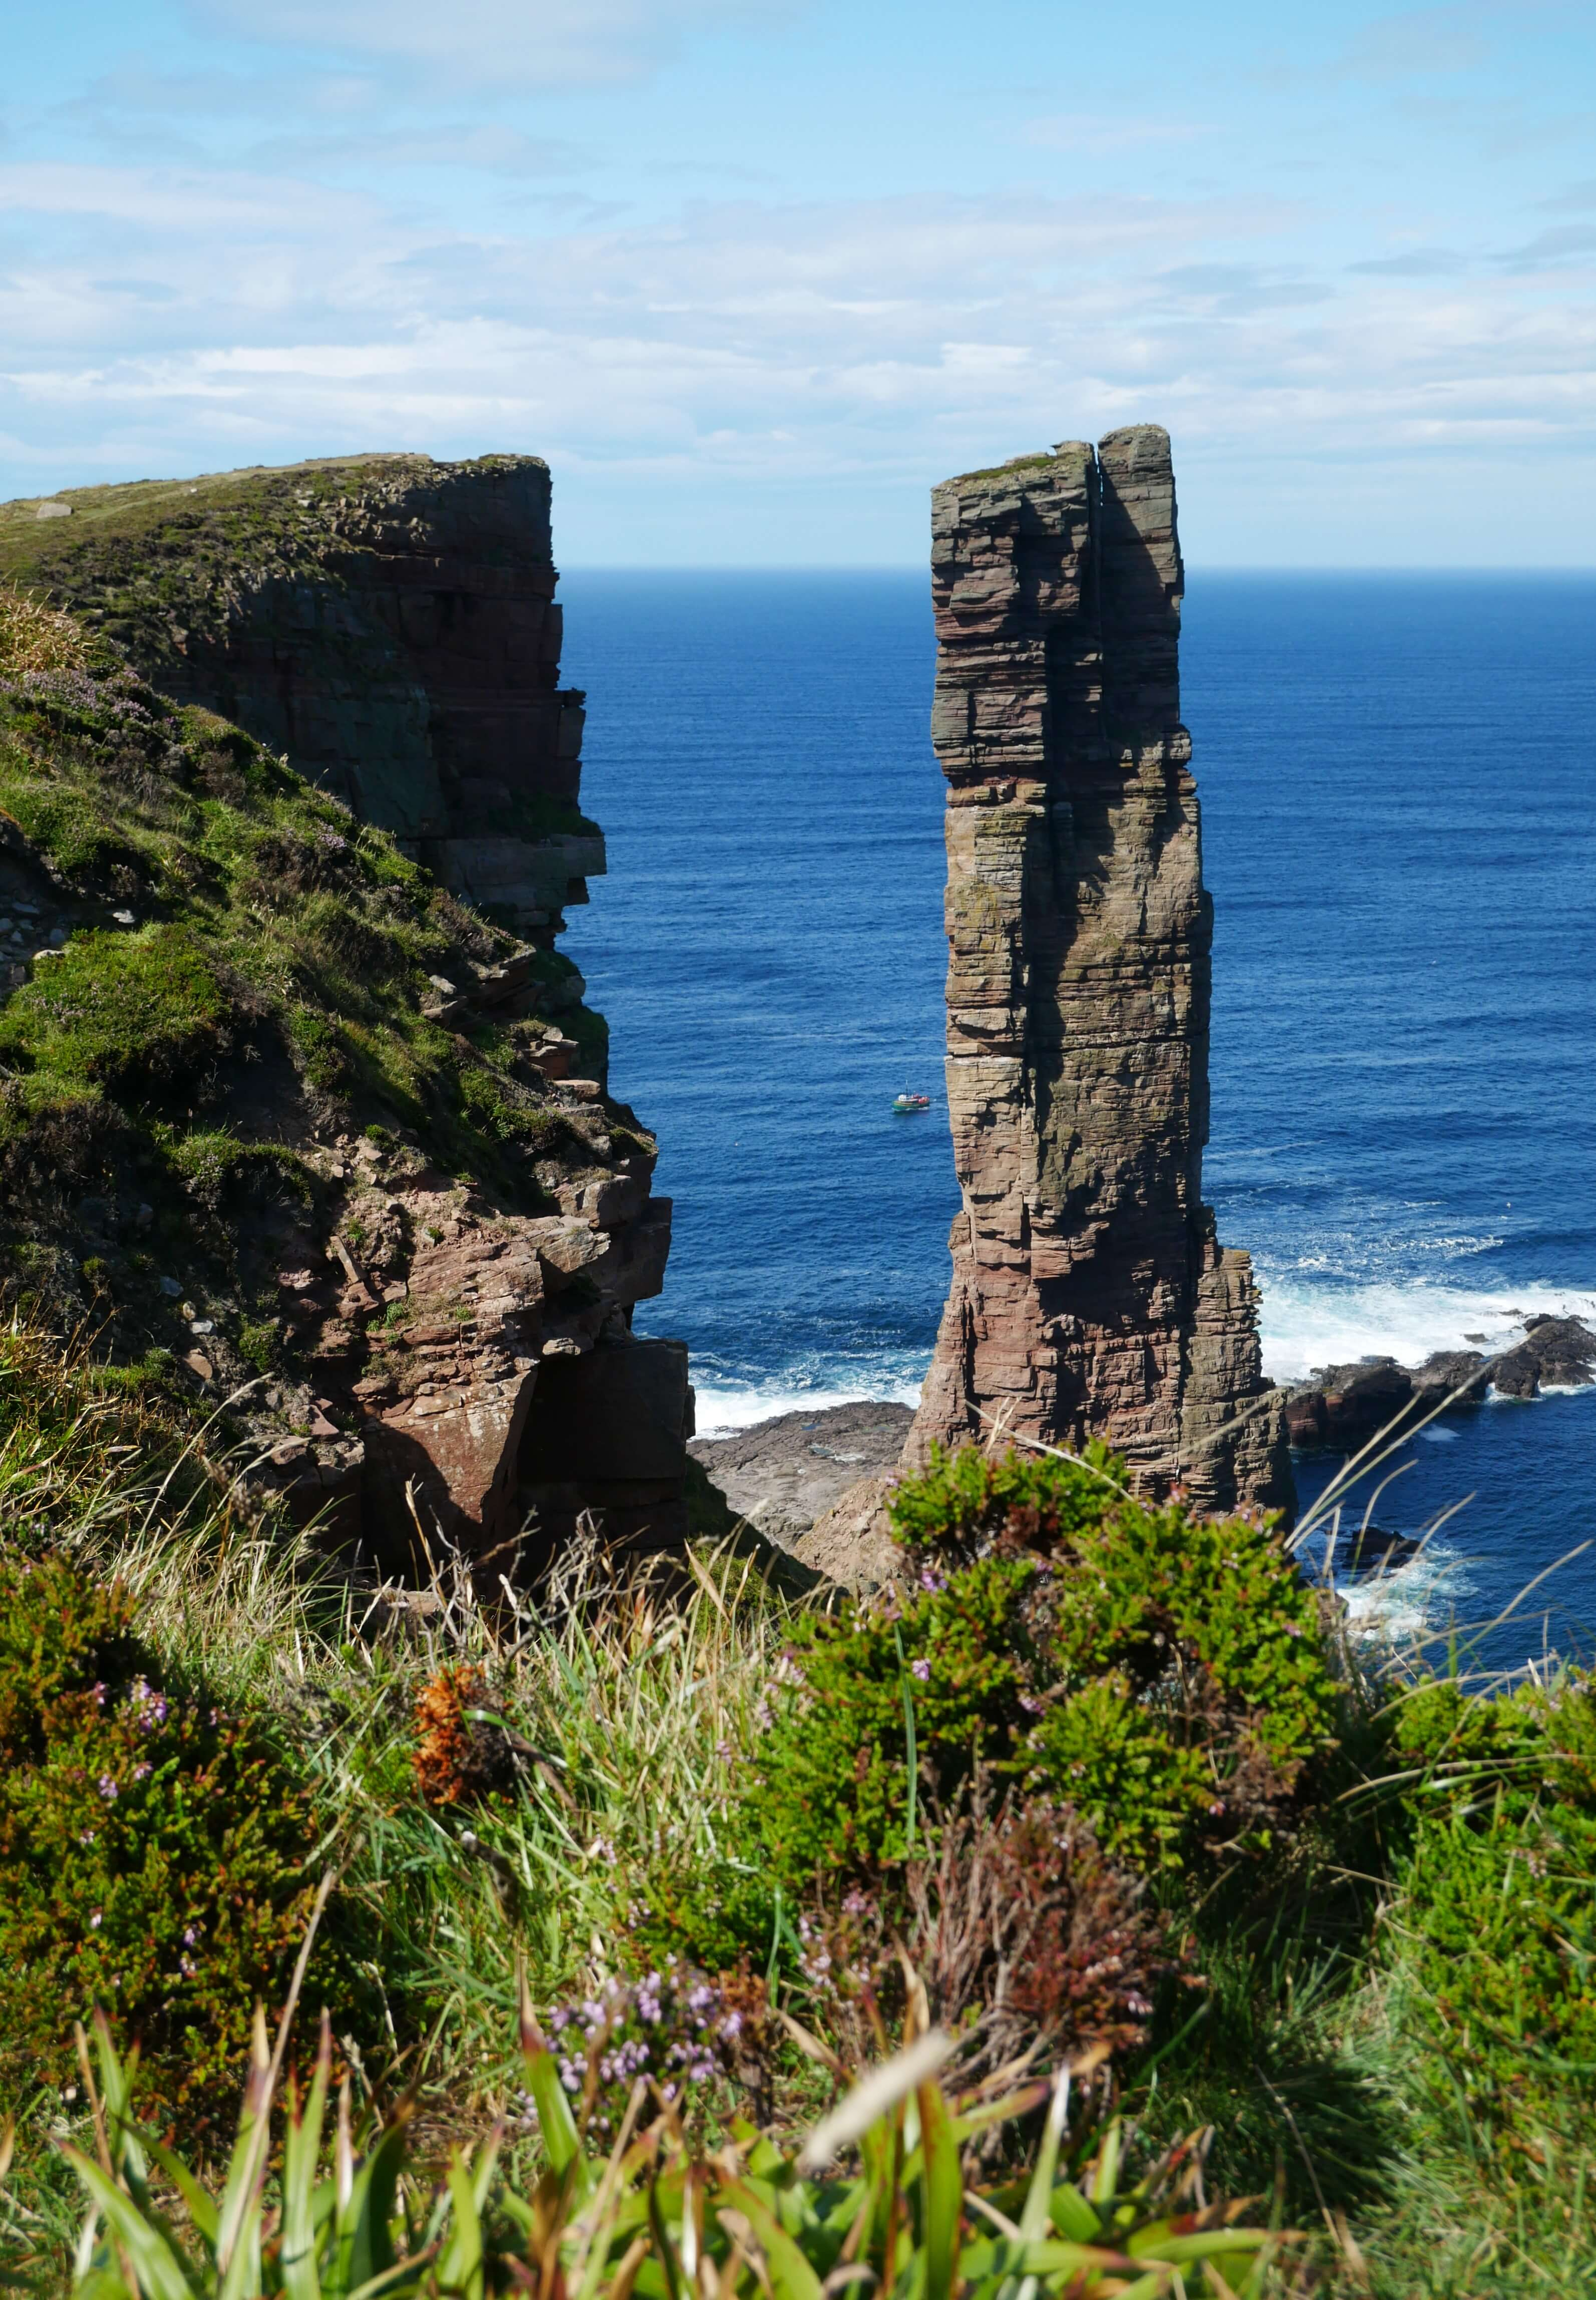 The Old Man of Hoy, Orkney Islands, Scotland